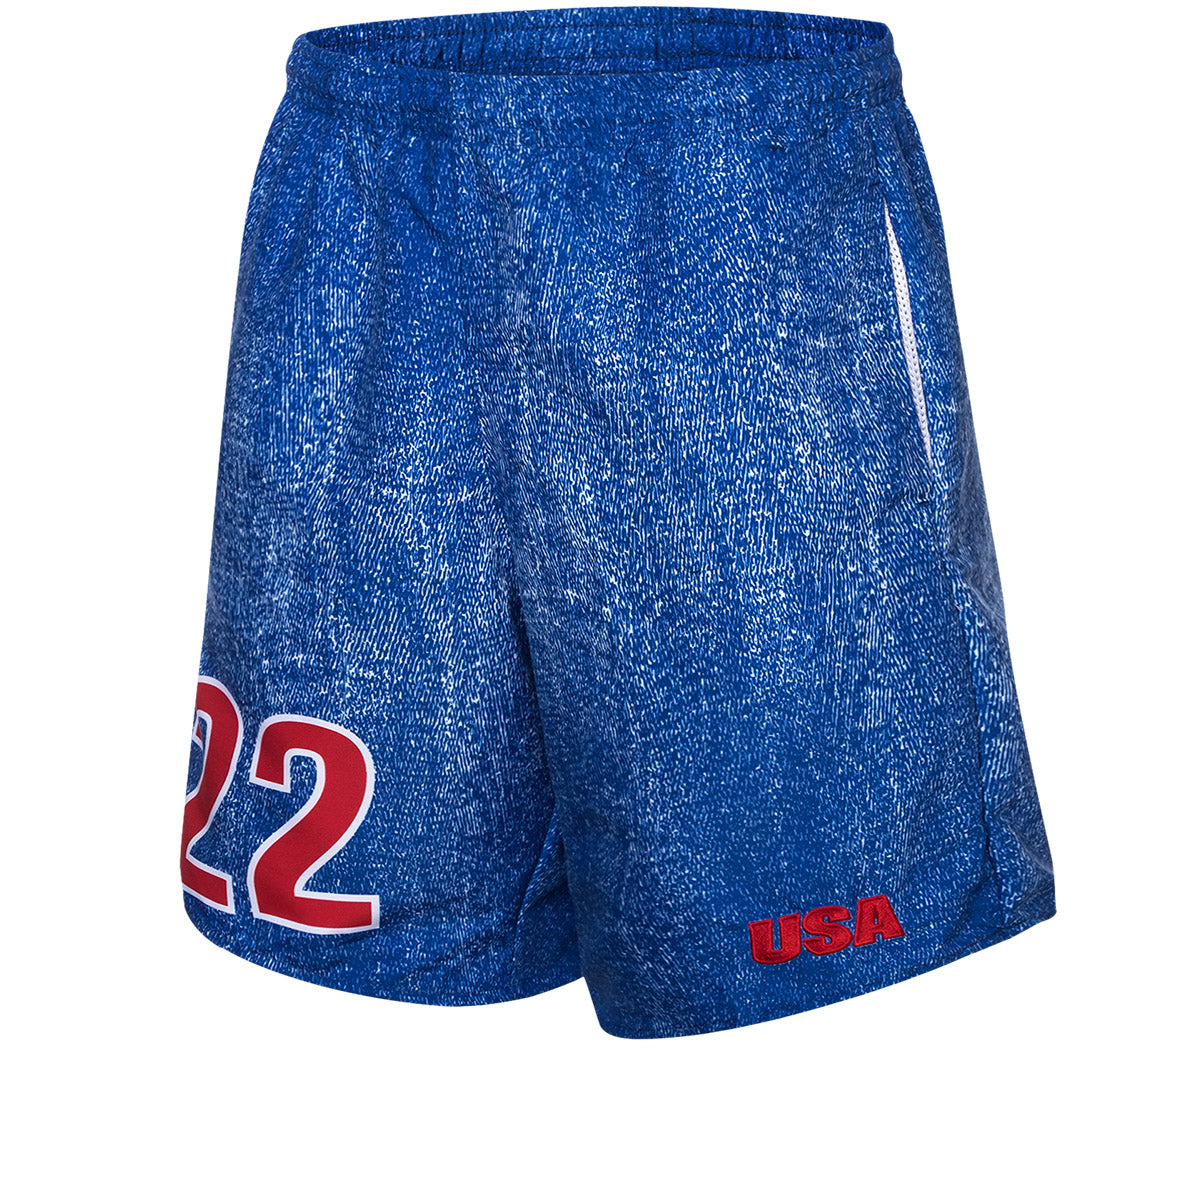 1994 U.S. Soccer 'Denim' Shorts - Streaker Sports